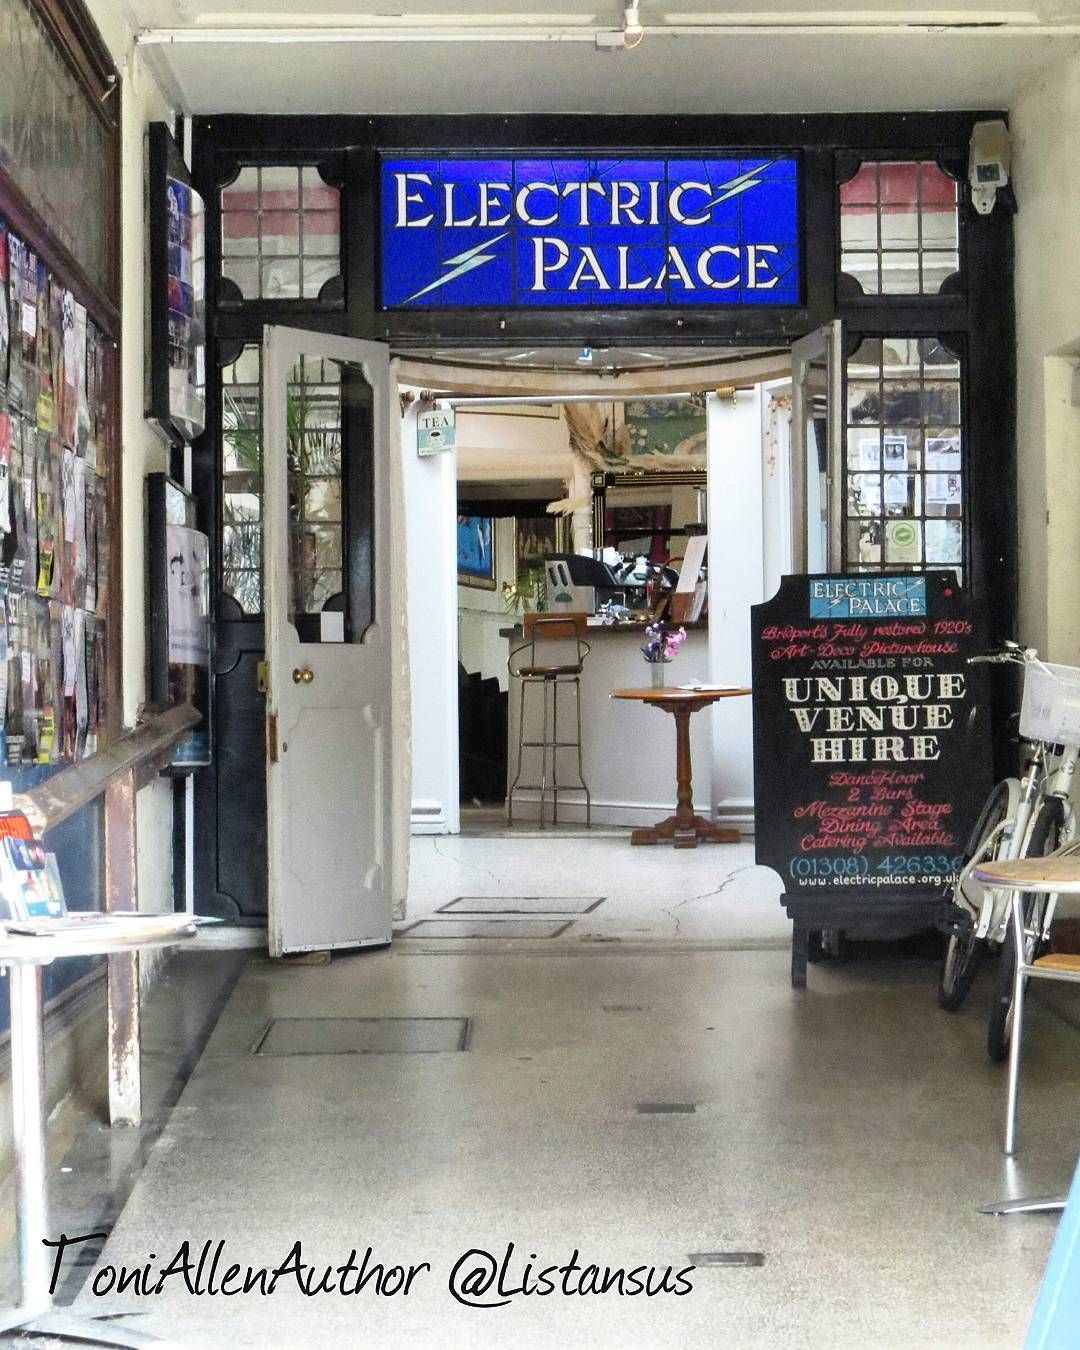 Entrance to the Electric Palace Bridport Dorset. Not only